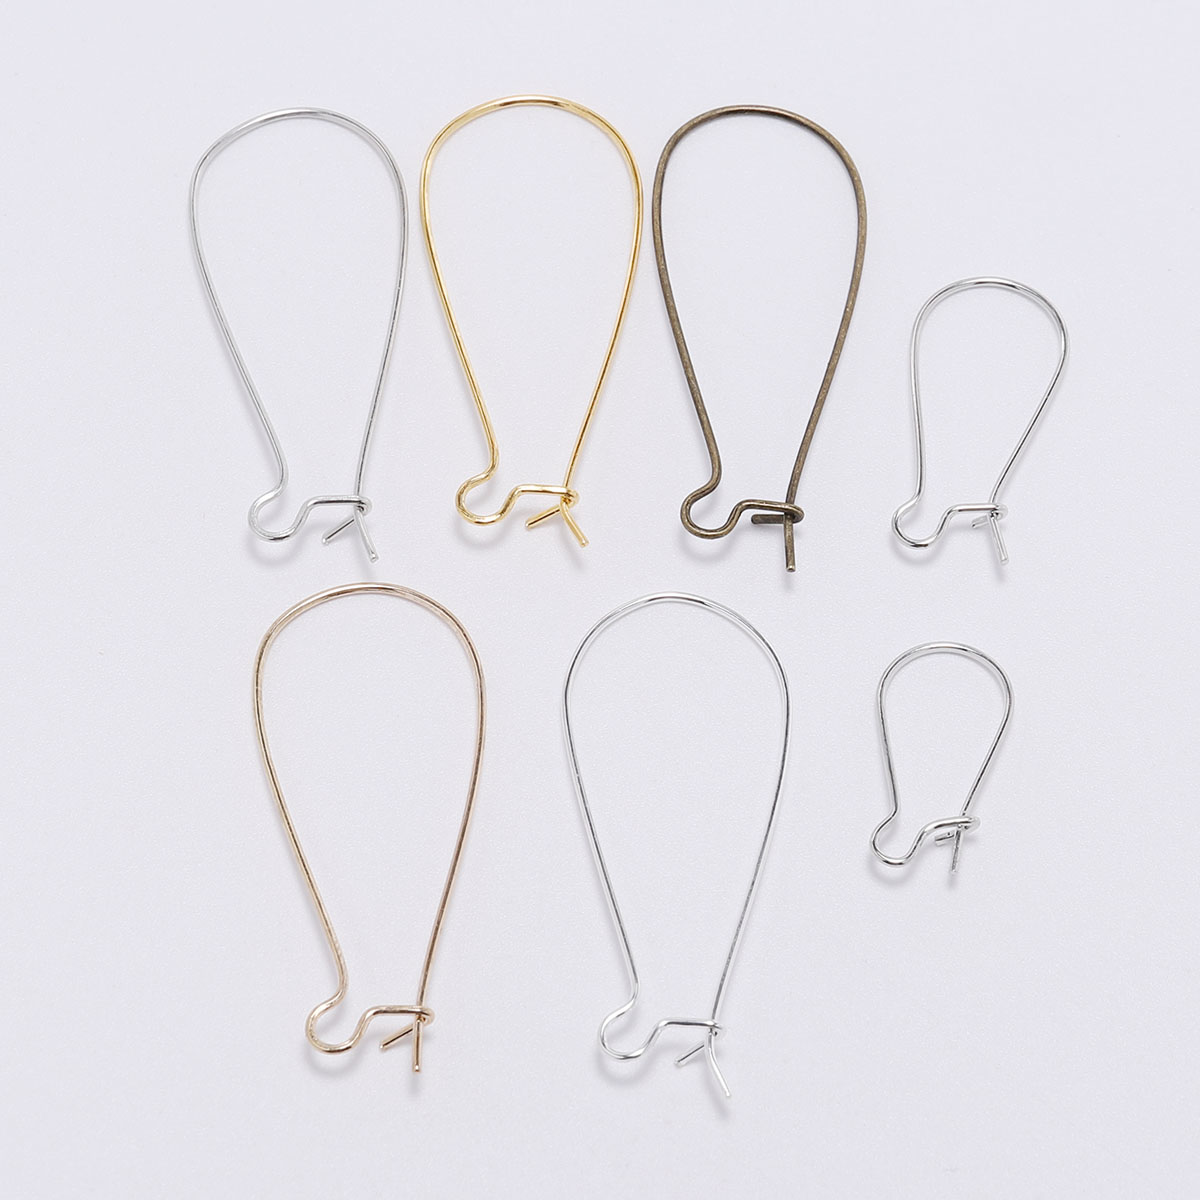 50pcs/lot French Earring Loop Hoops Ear Wire Hook For Jewelry Making Findings DIY Earrings Settings Base Accessories Supplies(China)